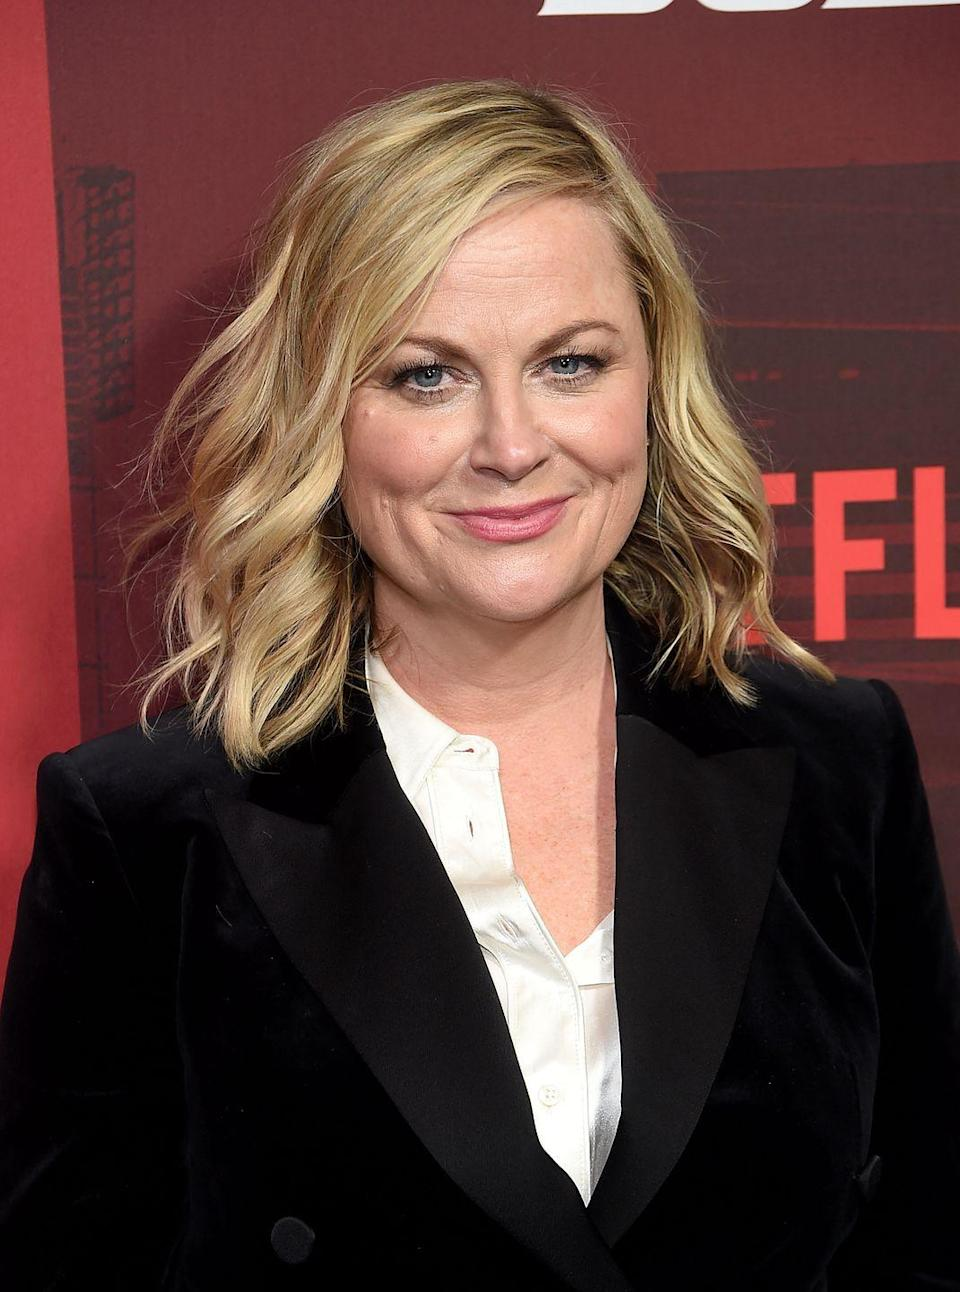 """<p>Funny woman Amy Poehler wrote a piece for <em><a href=""""https://www.newyorker.com/magazine/2013/10/14/take-your-licks"""" rel=""""nofollow noopener"""" target=""""_blank"""" data-ylk=""""slk:the New Yorker"""" class=""""link rapid-noclick-resp"""">the New Yorker</a></em> about how she spent the summer before college working at Chadwick's, a local ice cream parlor that specialized in sundaes and steak fries.</p><p>""""Hard and physical, the job consisted of stacking and wiping and scooping and lifting,"""" she said. """"But I soon learned the satisfaction of working at a place that truly closed. I took great joy in watching people stroll in after hours, thinking they could grab a late-night sundae. I would point to the dimmed lights and stacked chairs as proof that we were shut. It was deliciously obvious and final.""""</p>"""